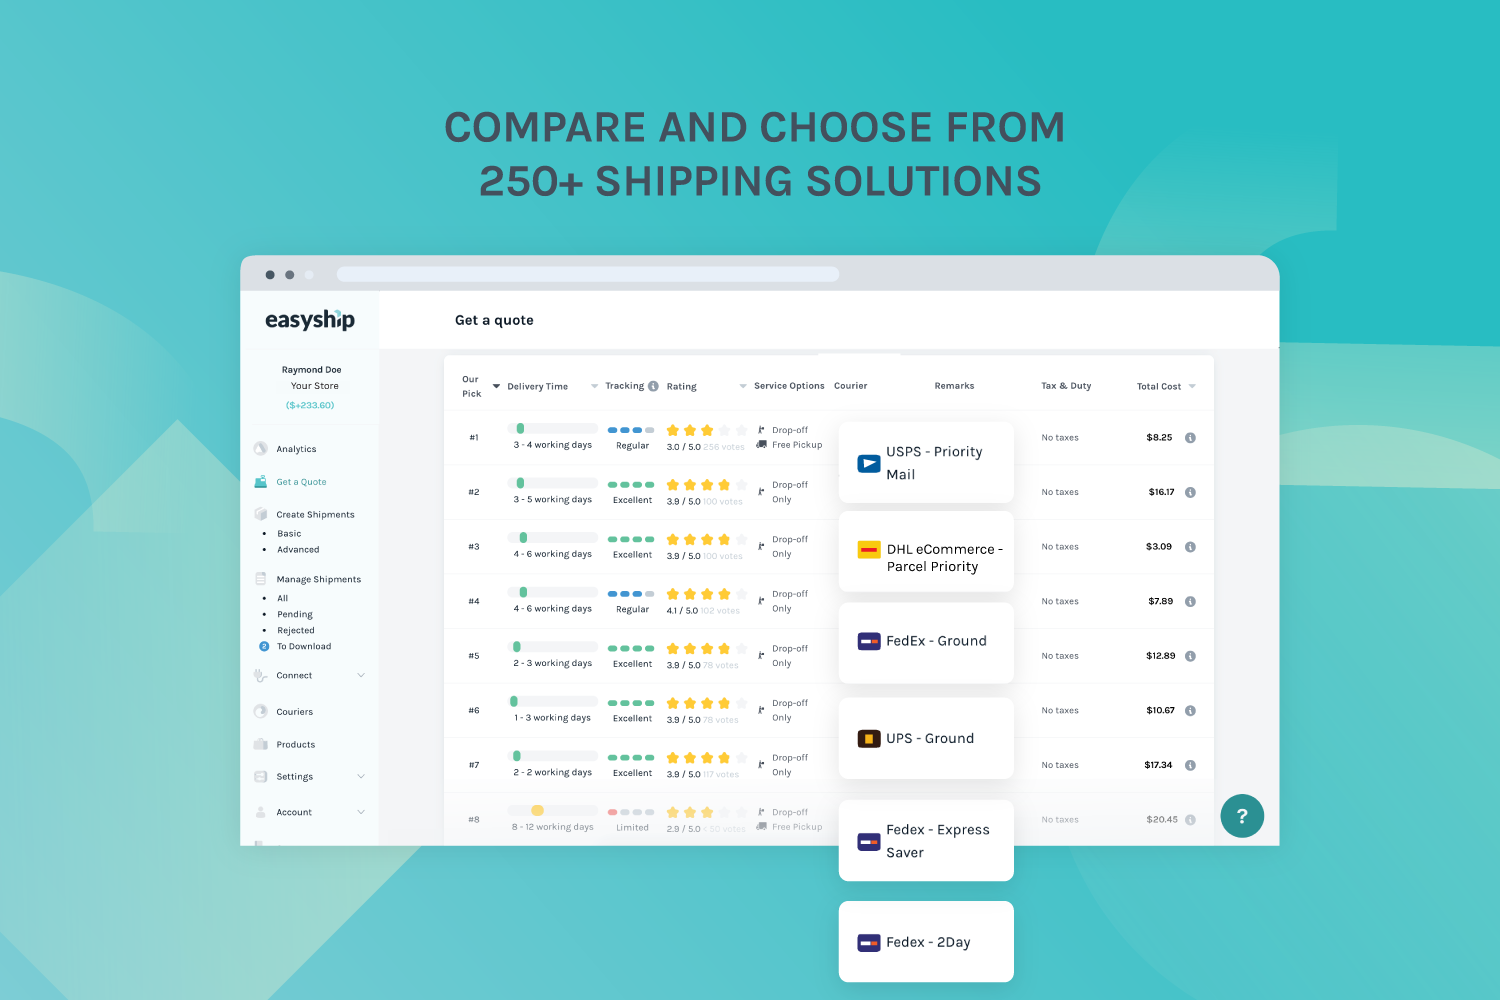 Compare and choose from 250+ shipping solutions